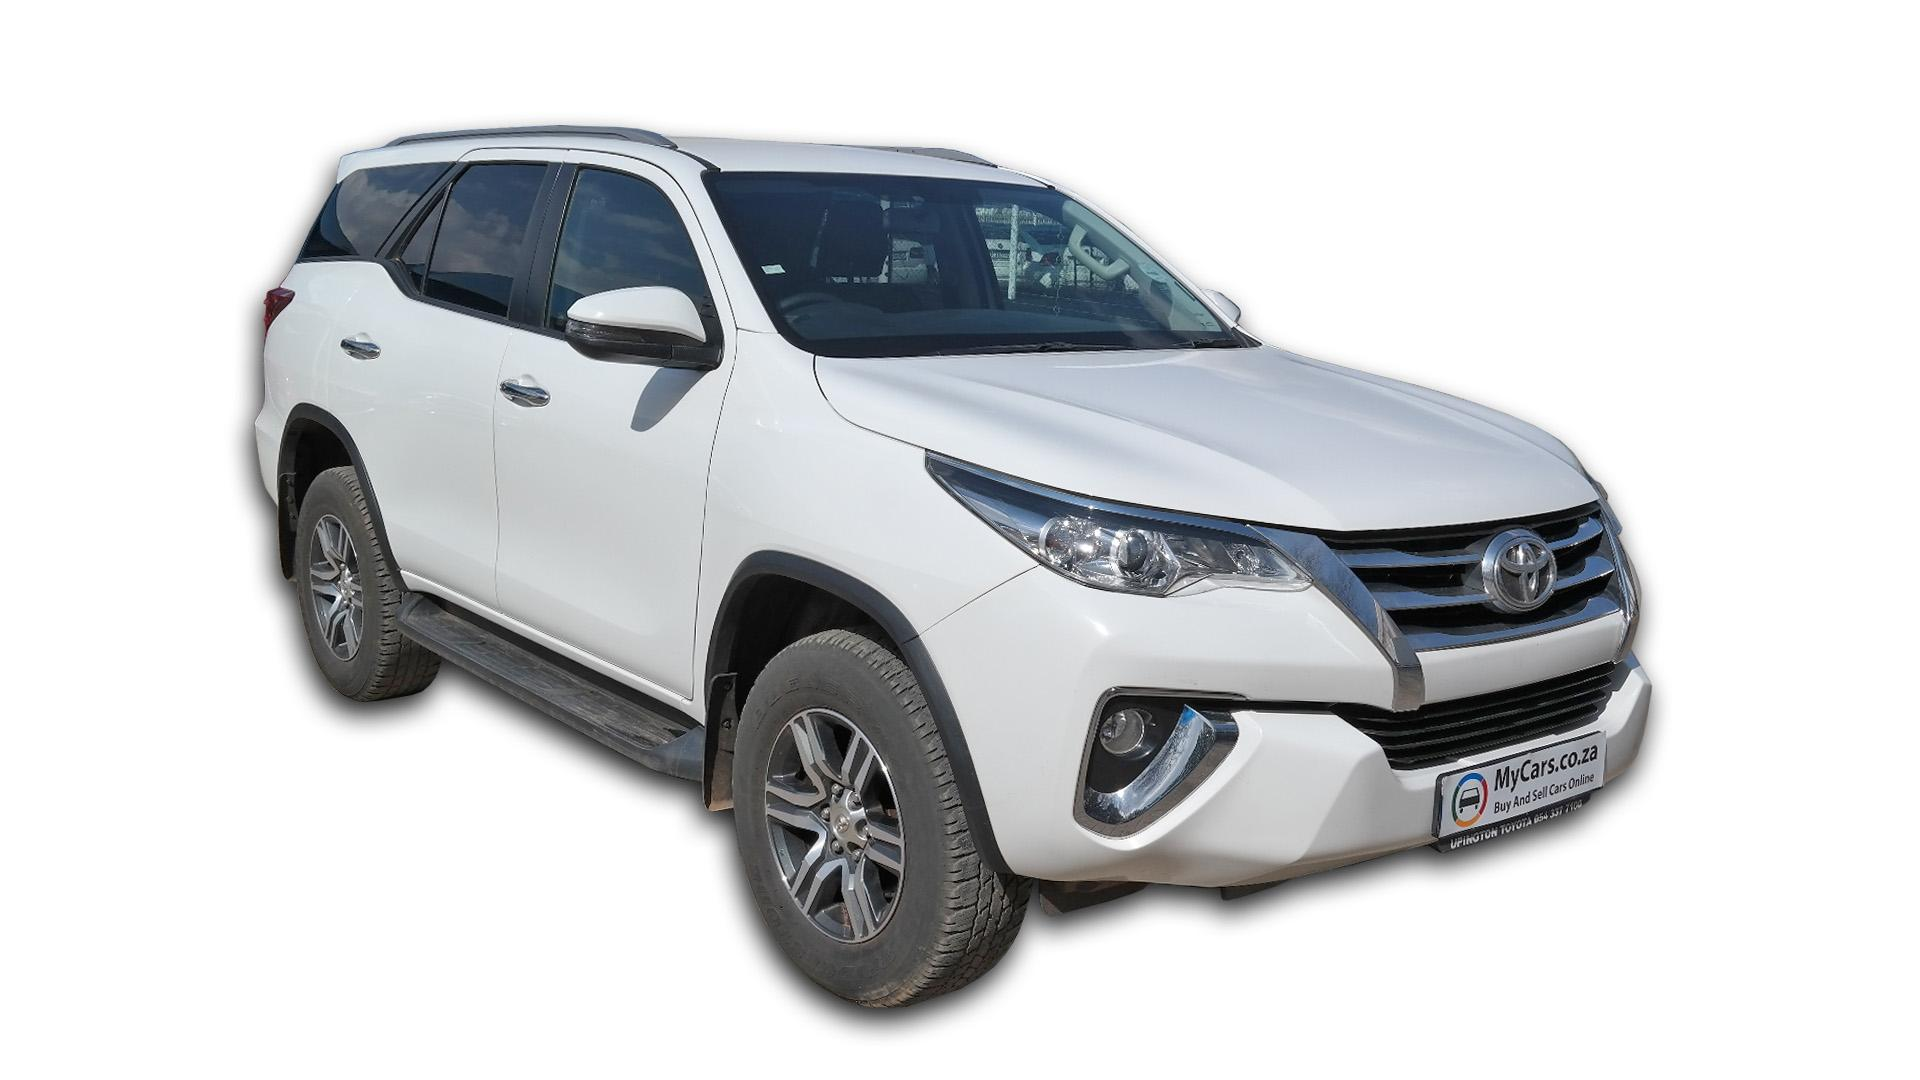 Toyota Fortuner 2.4GD-6 4X4